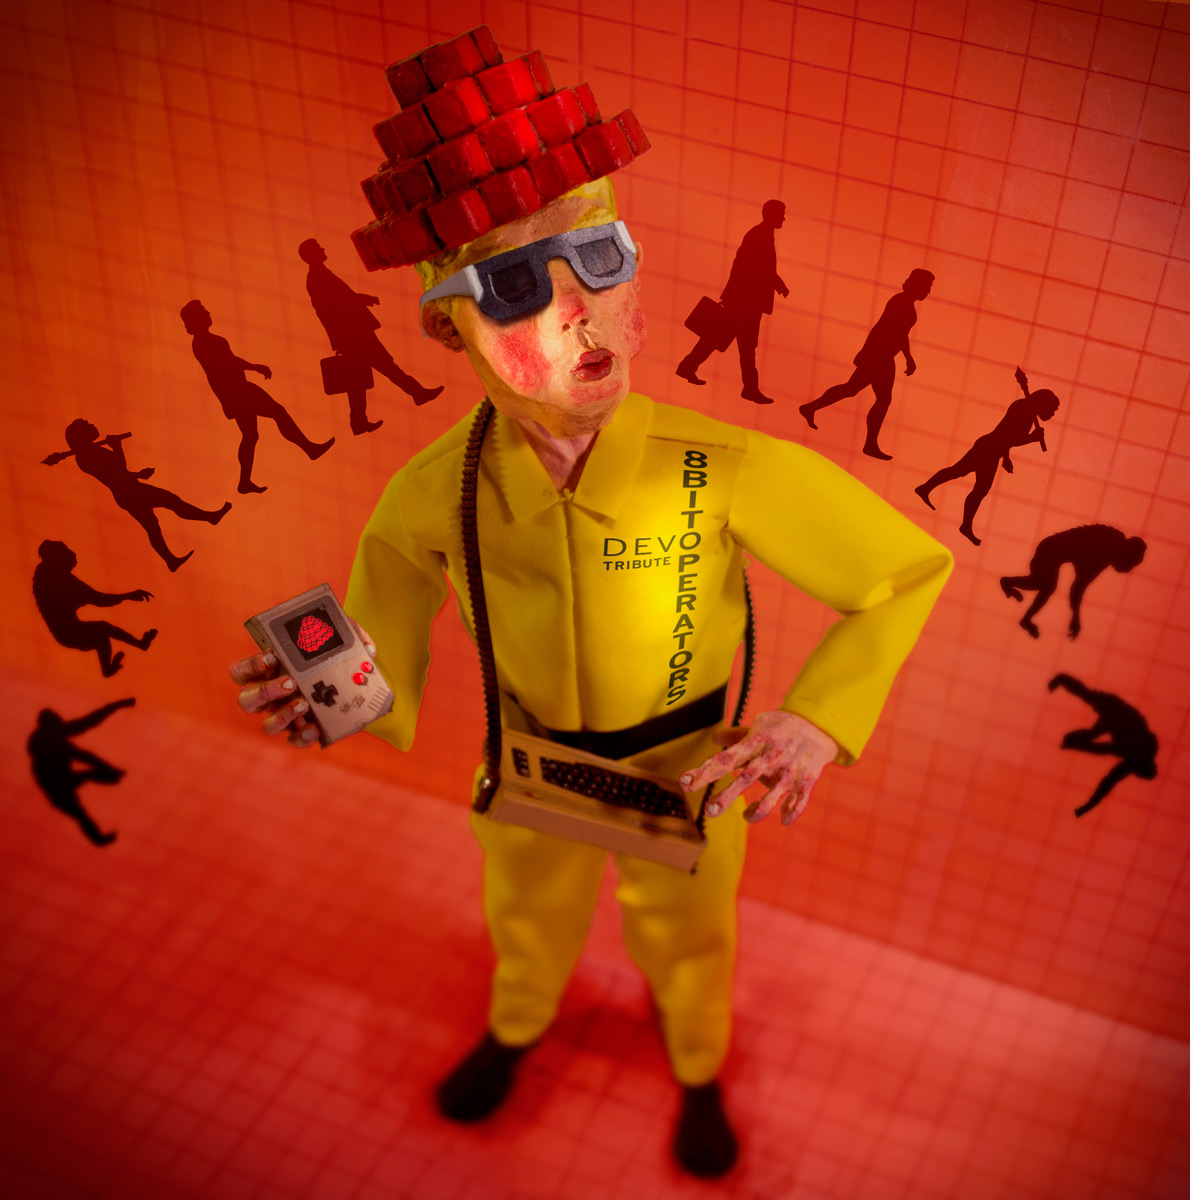 8-Bit Operators - DEVO Tribute - Crack That Chip!